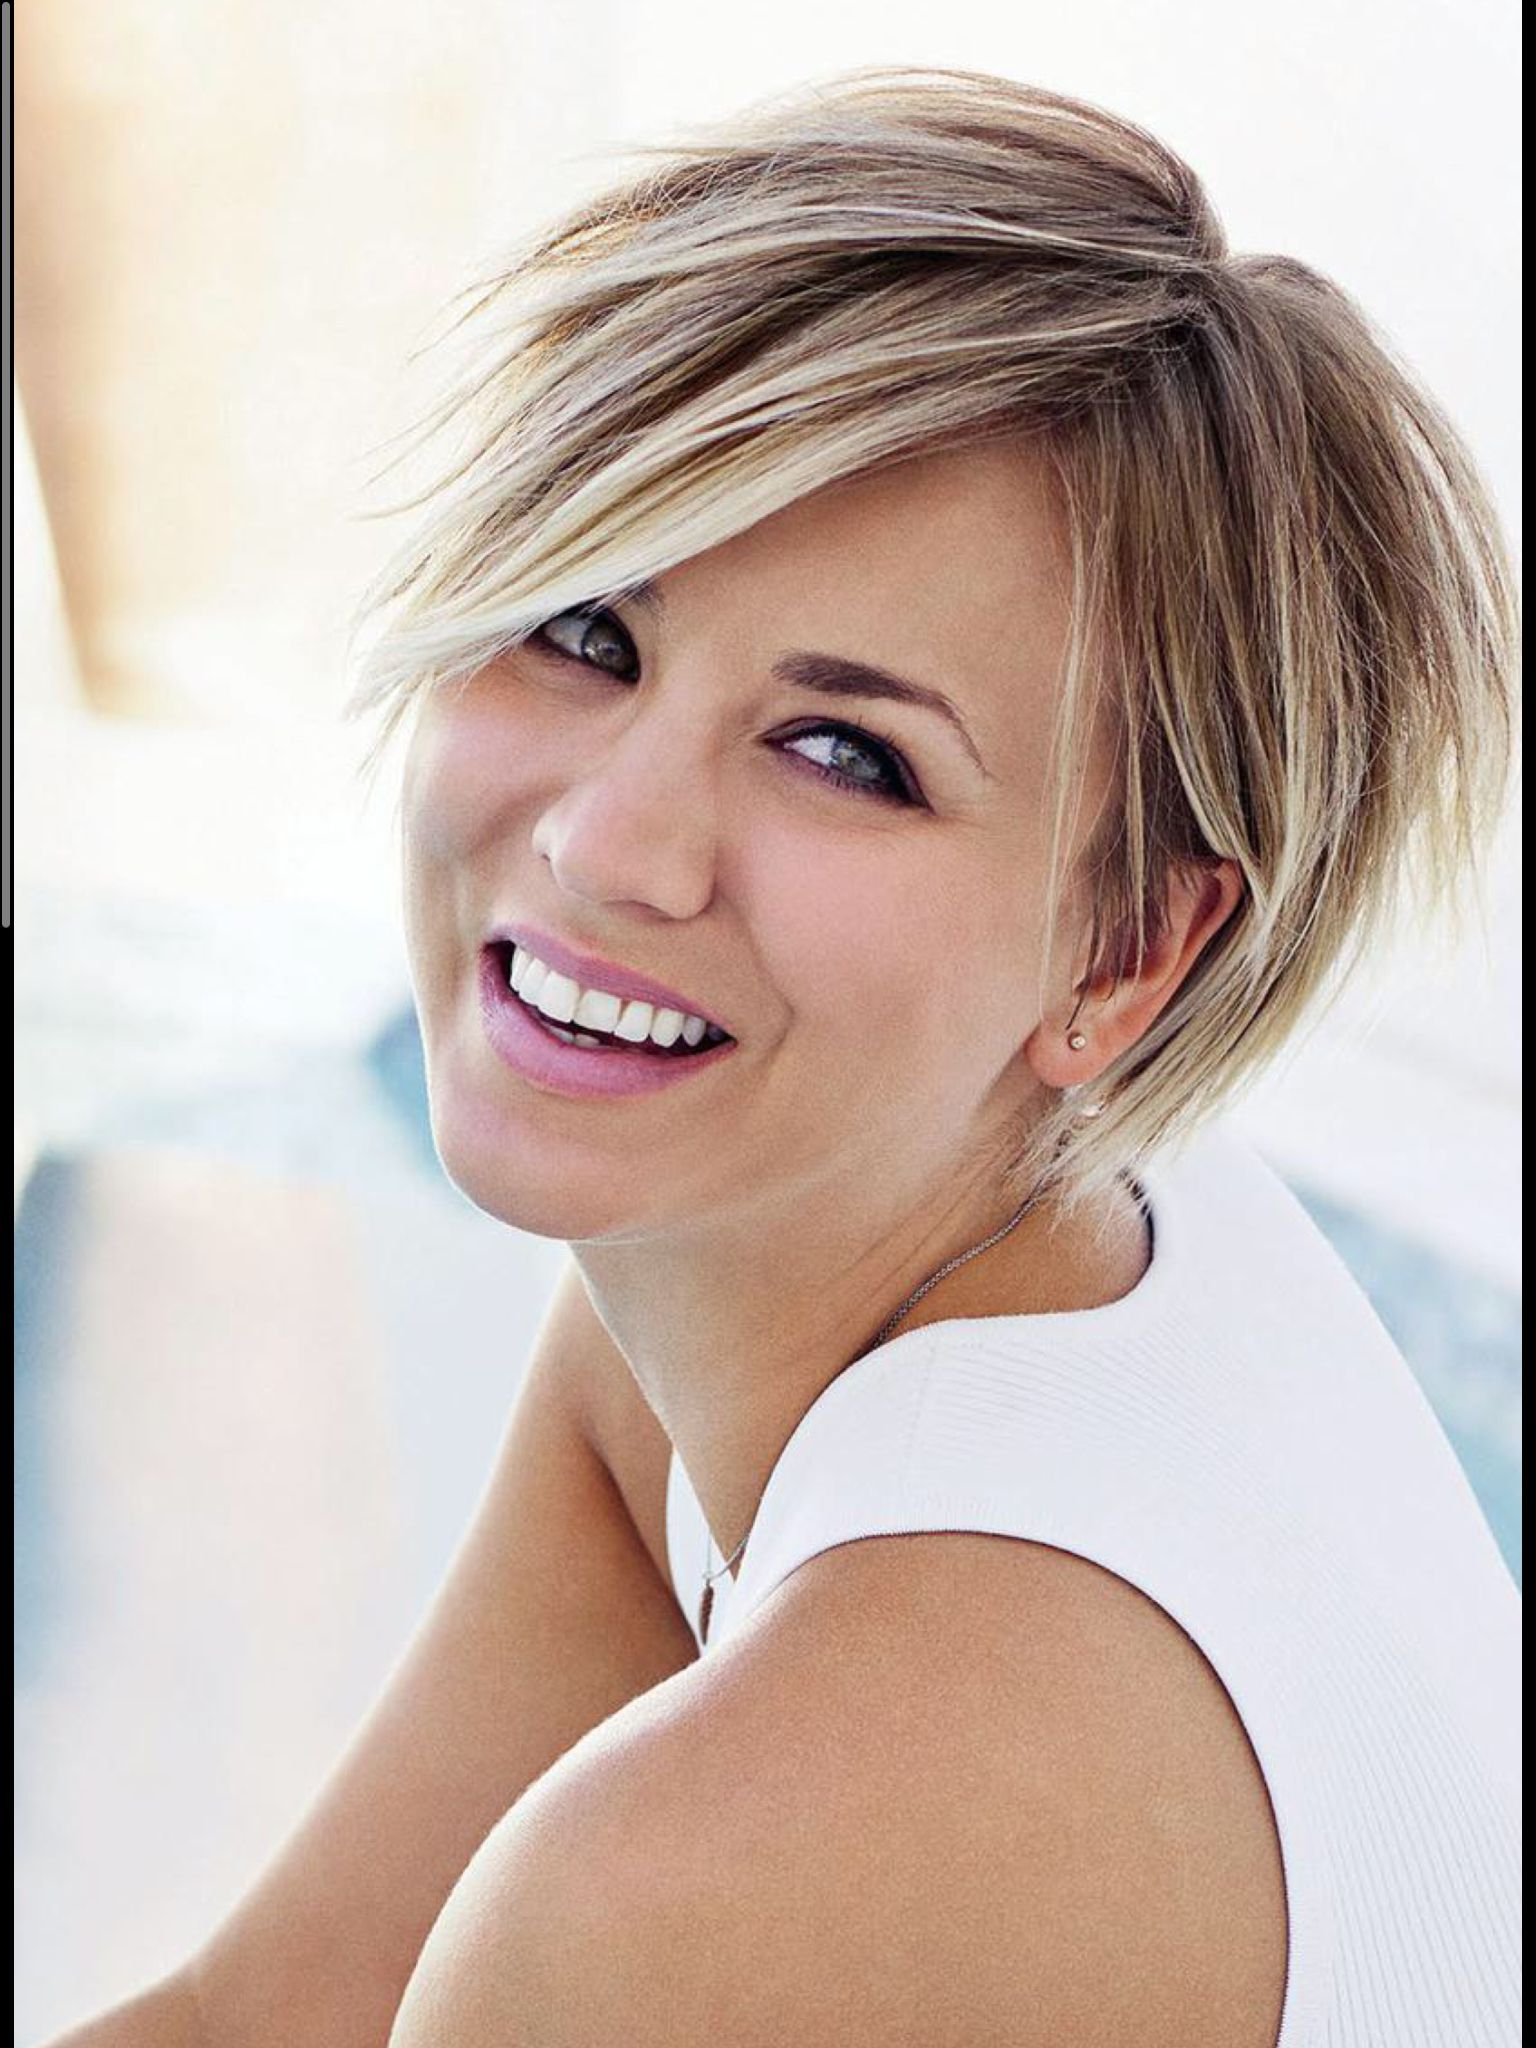 Love Kaley Cuoco's New Haircut! | Hair | Pinterest | Haircuts, Hair In Kaley Cuoco Short Hairstyles (View 9 of 25)